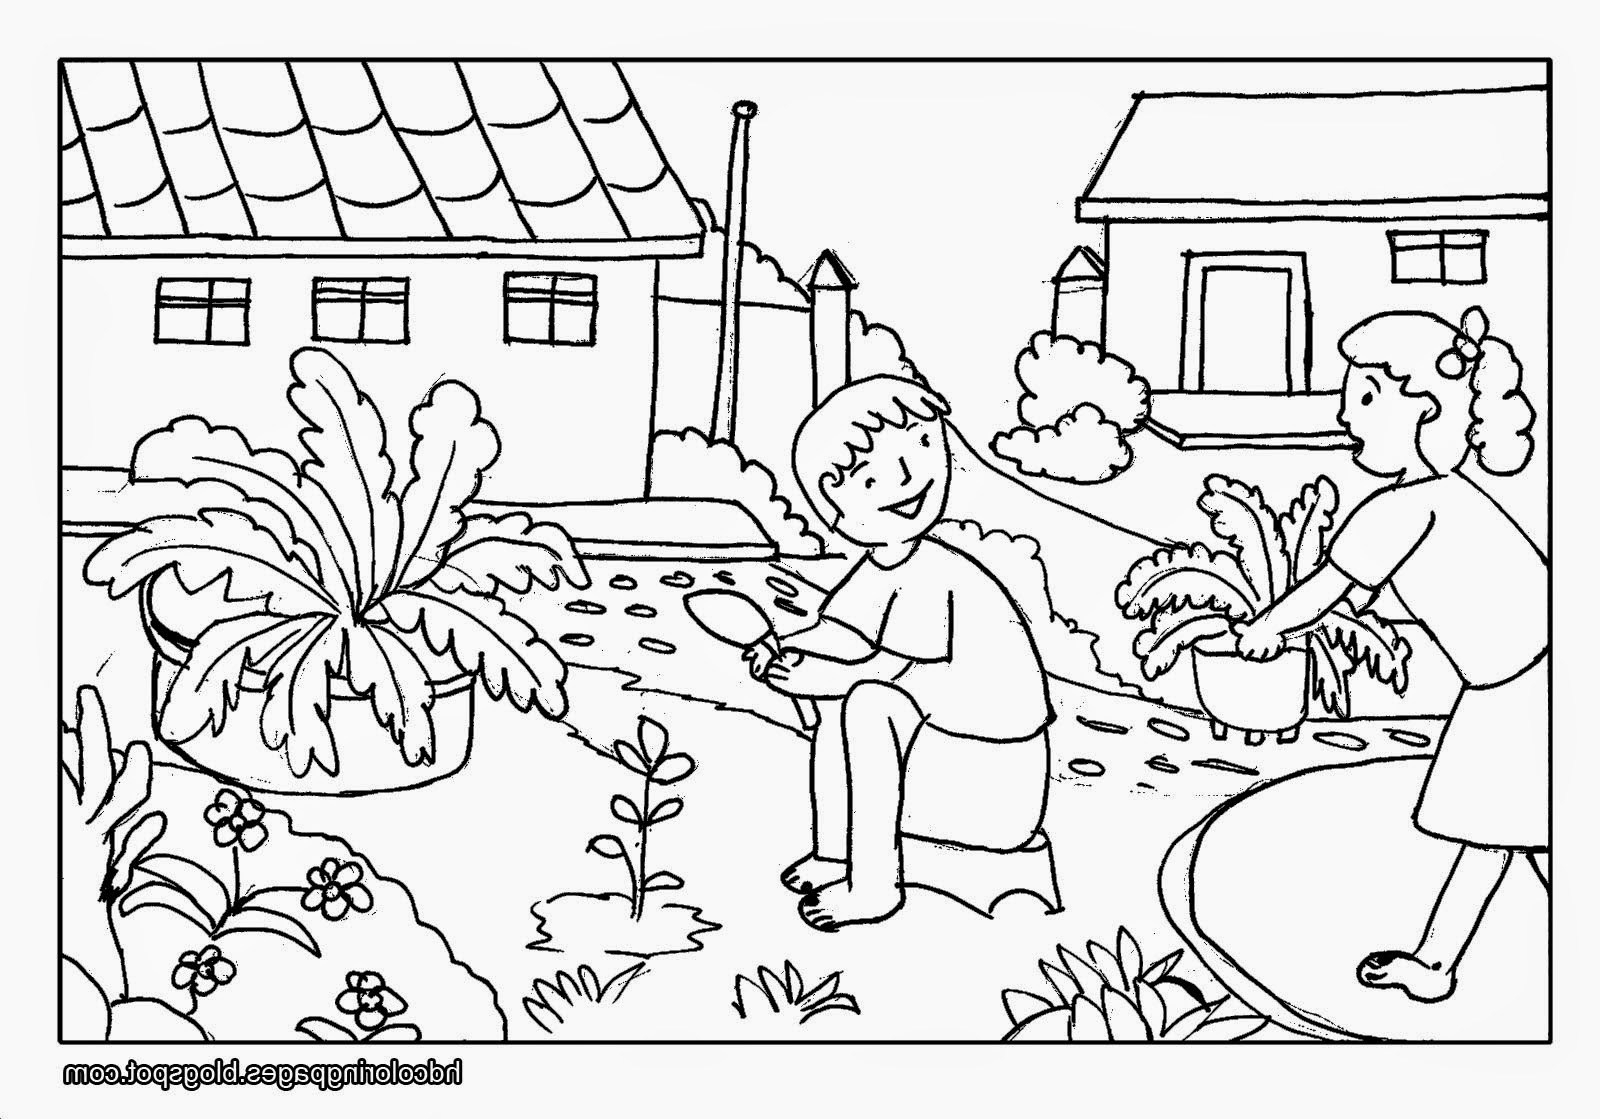 coloring book nature scenes free coloring pages printable pictures to color kids coloring book nature scenes